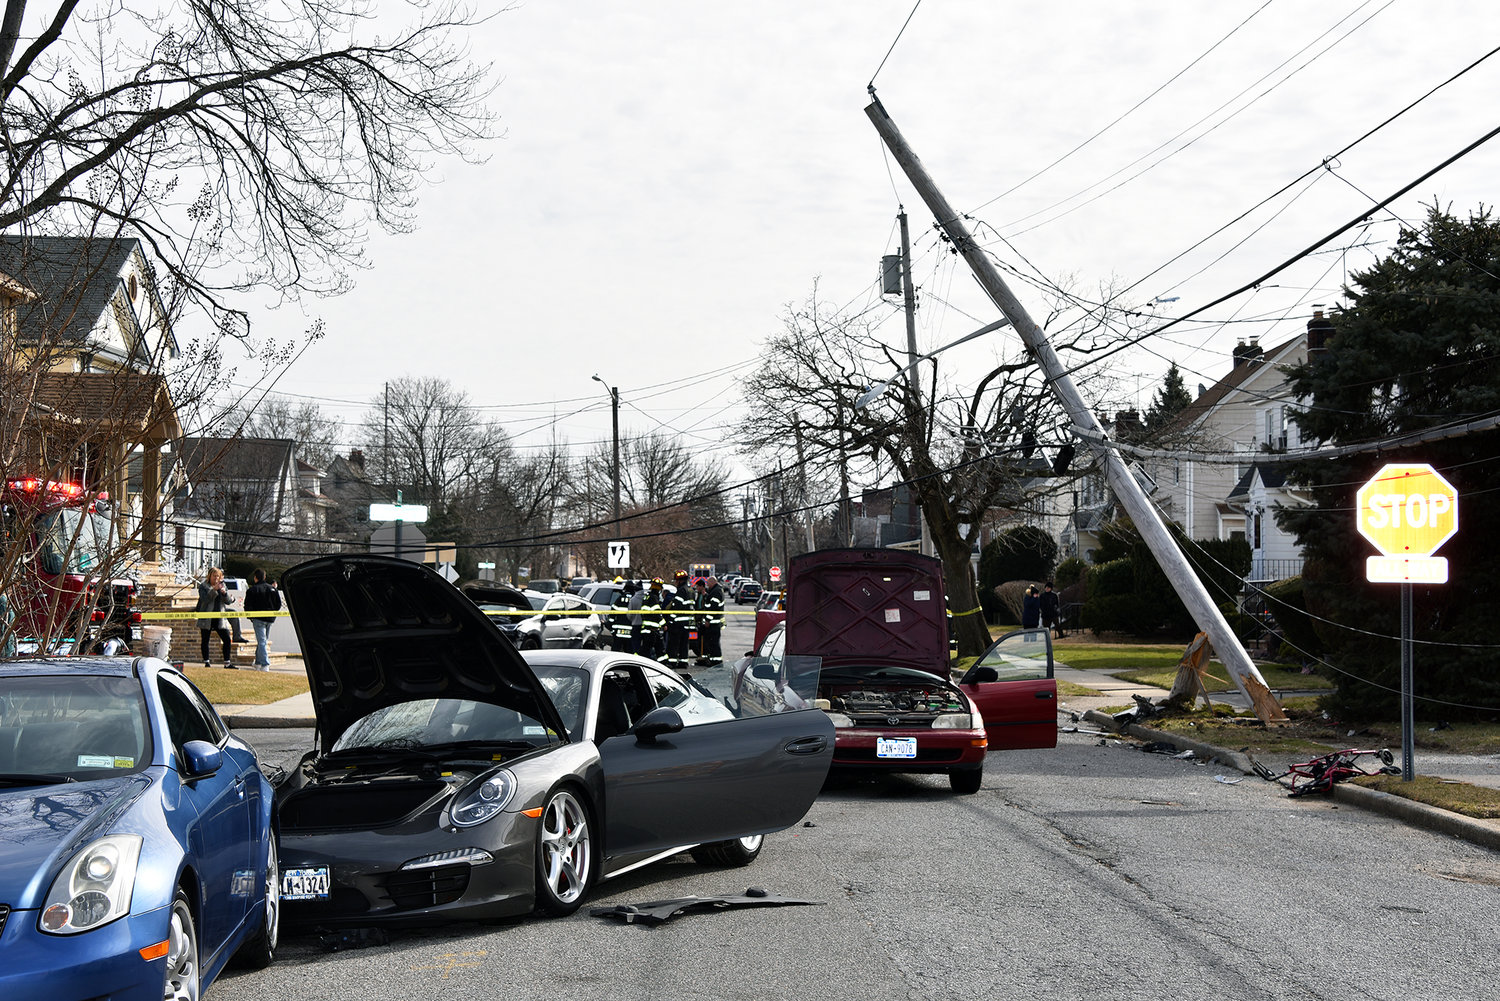 A multi-car crash on Hewlett Parkway severely damaged a utility pole and resulted in area homes losing power for a brief time on Feb. 10.